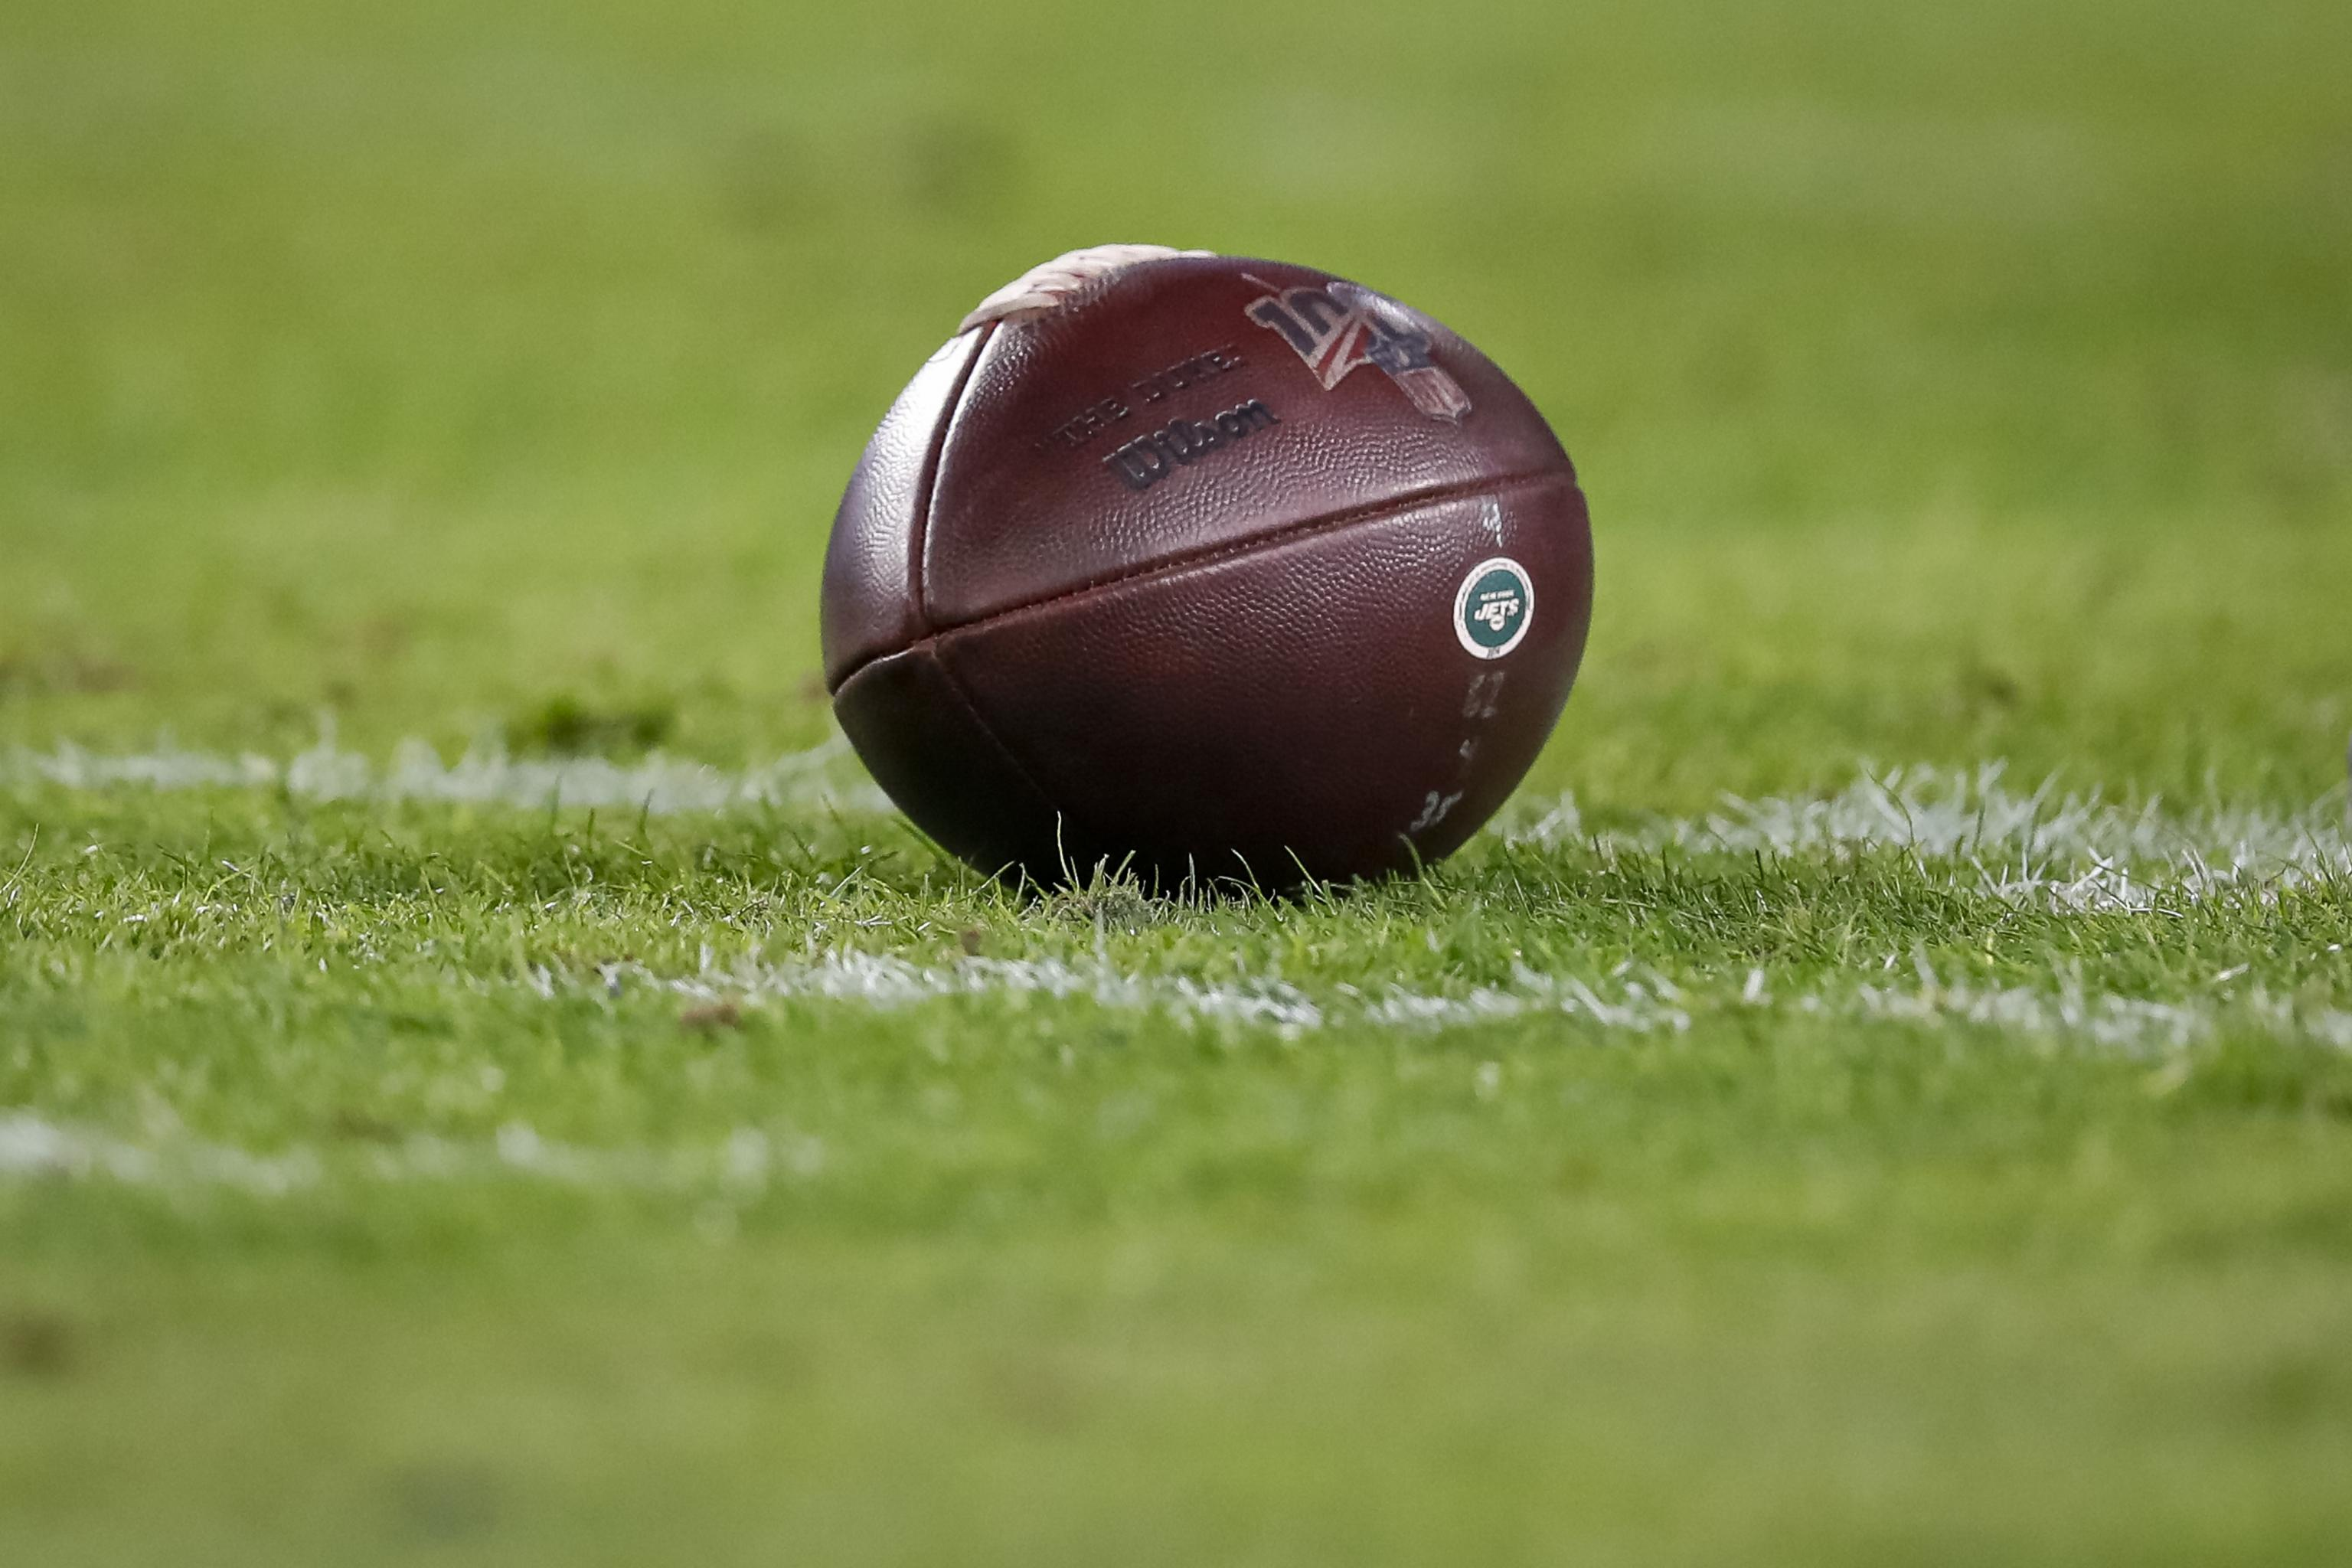 Nflpa Medical Director Nfl Plans To Test Players For Covid 19 3 Times Per Week Bleacher Report Latest News Videos And Highlights